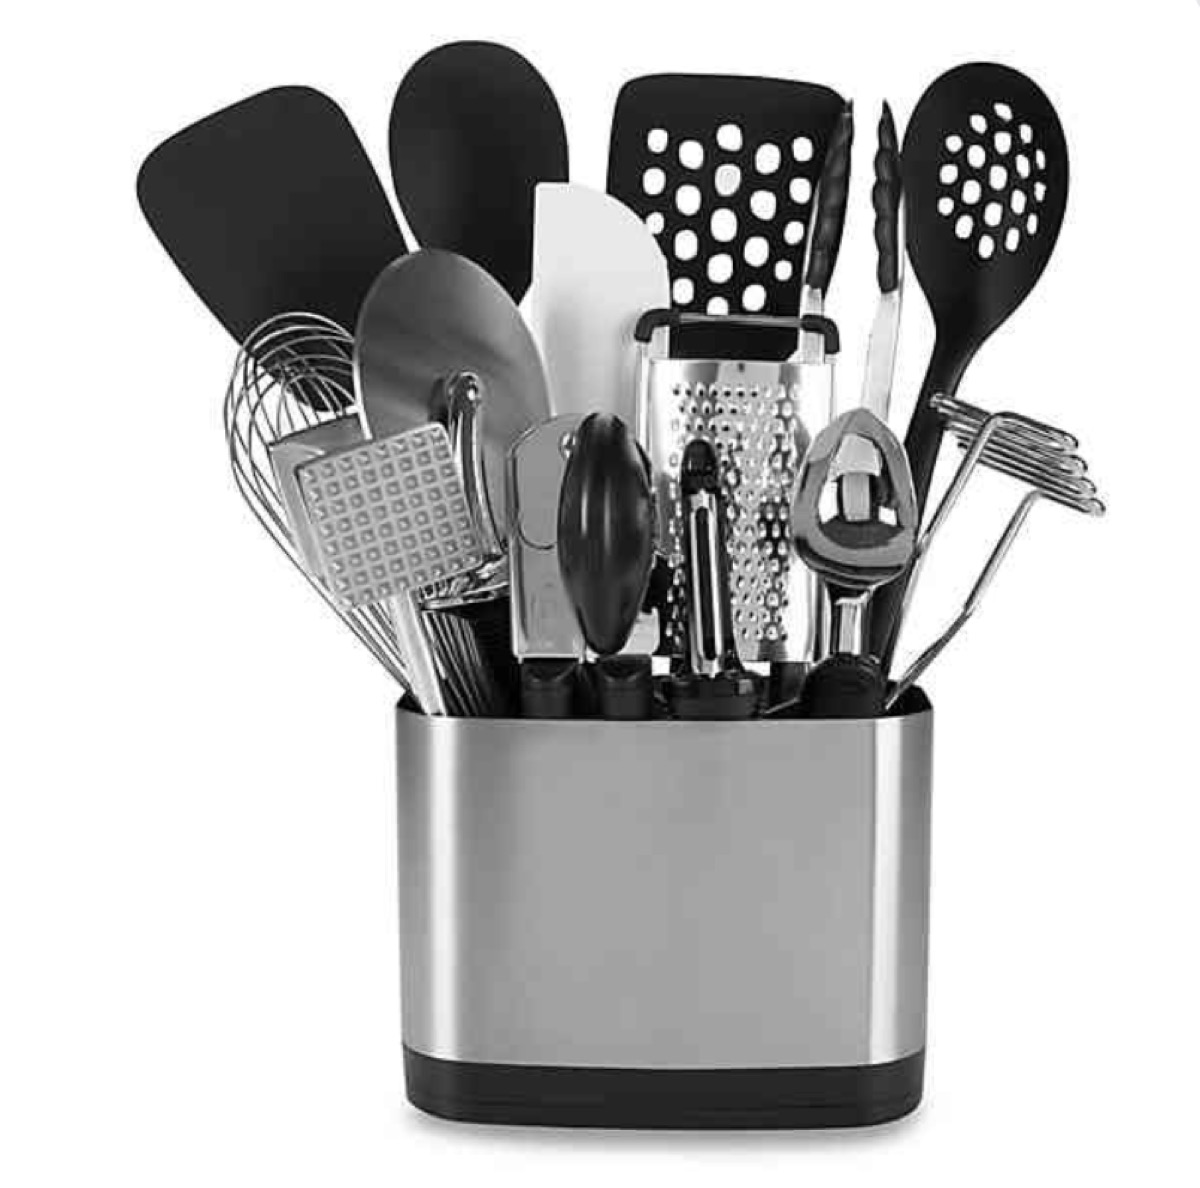 oxo good grips kitchen tool set with spatulas and cutting tools and graters in silver container